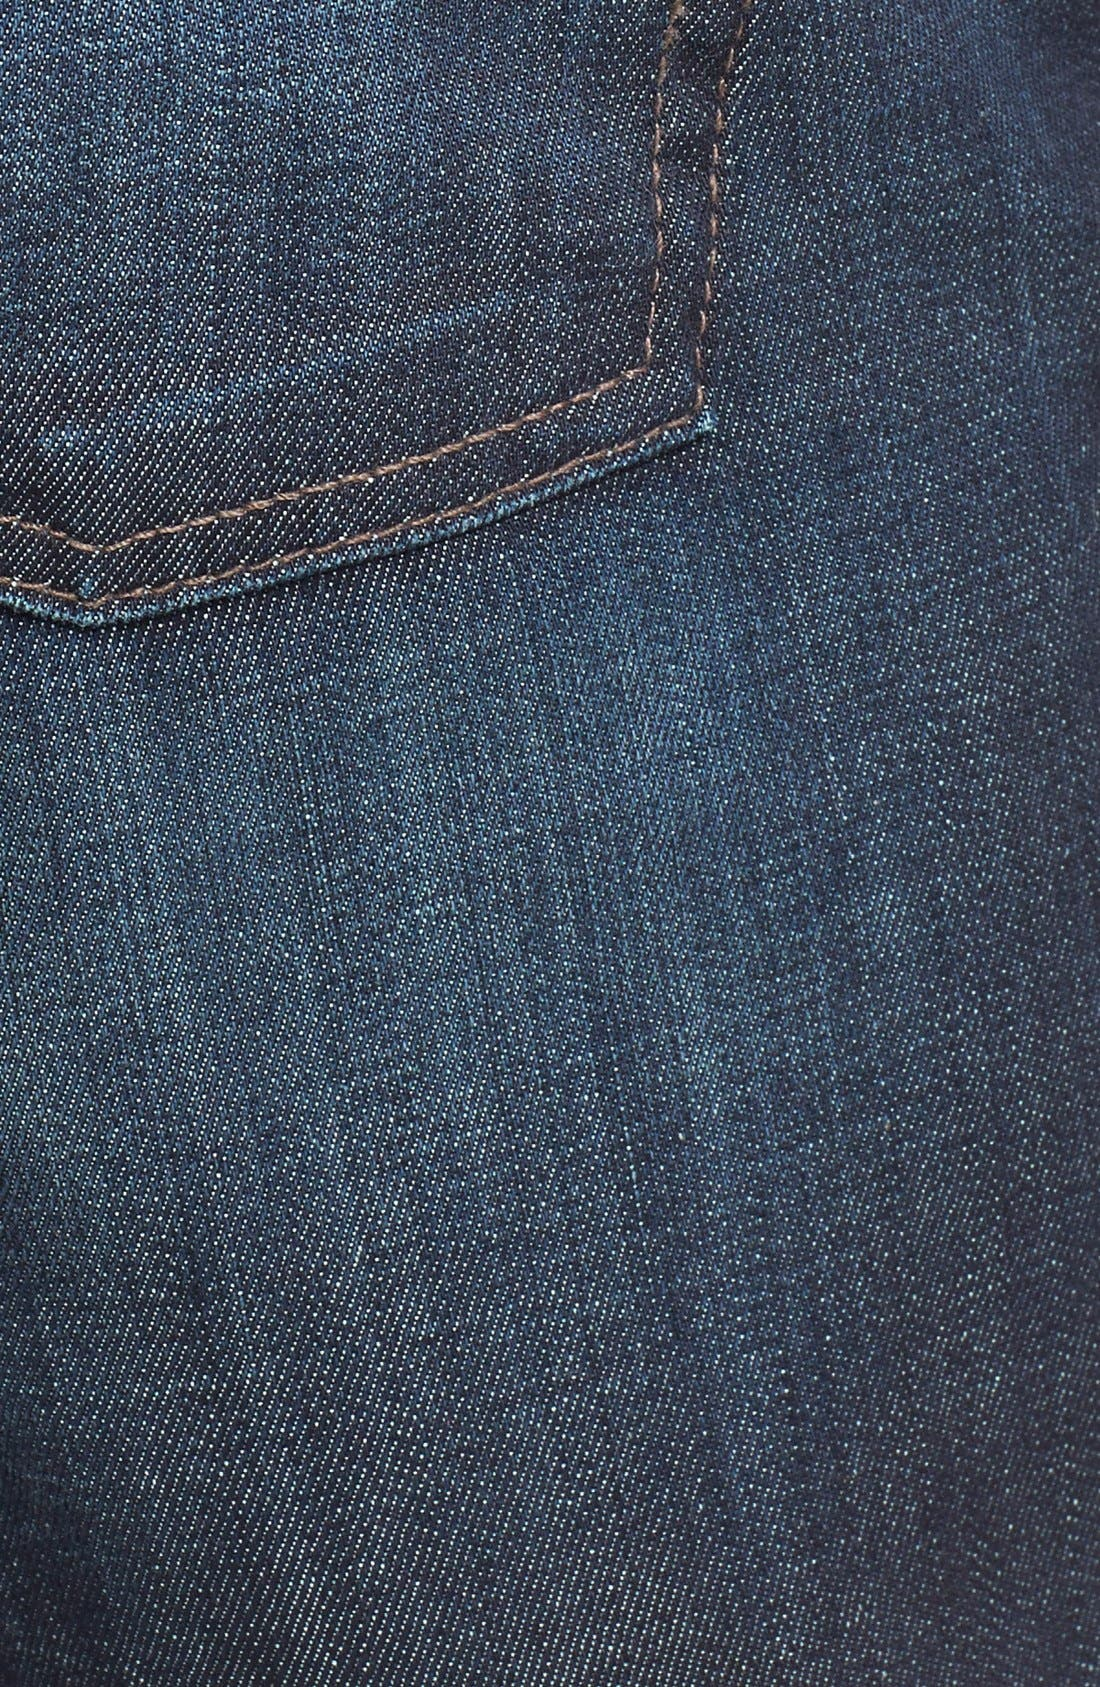 Alternate Image 4  - Fidelity Denim 'Jimmy' Slim Straight Leg Jeans (Harvard)